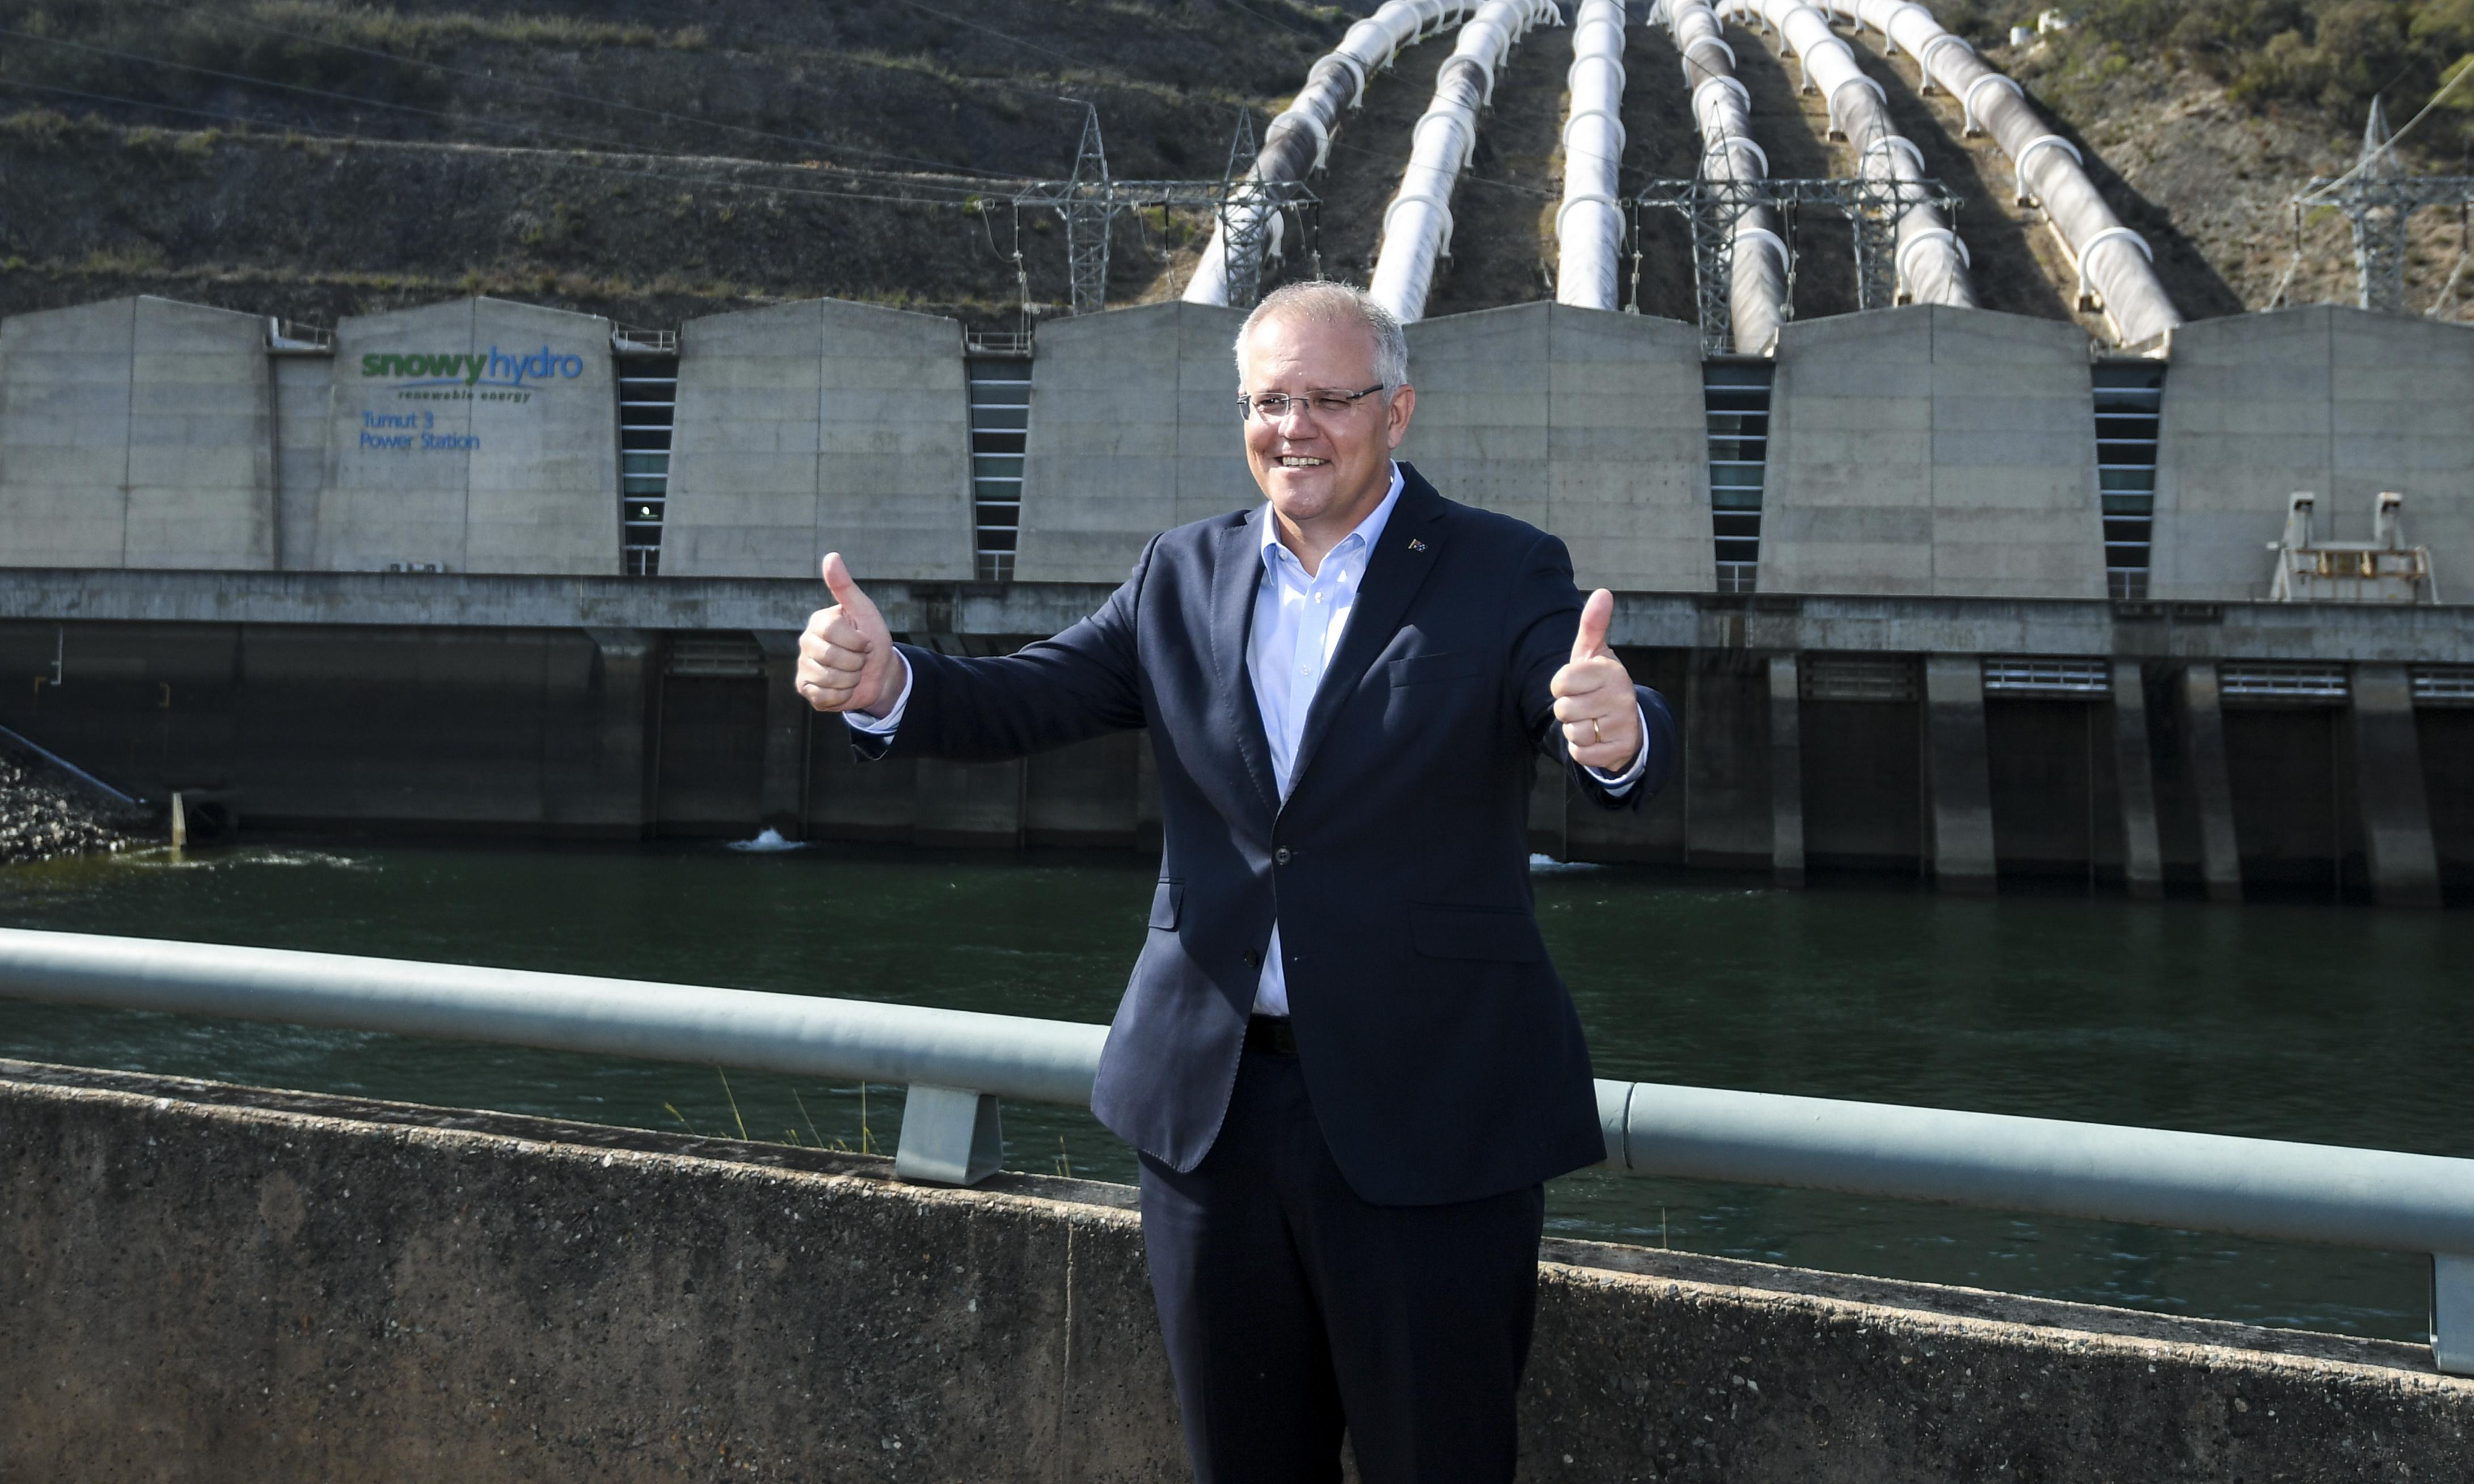 Snowy Hydro is a bad deal for taxpayers and must be put on hold